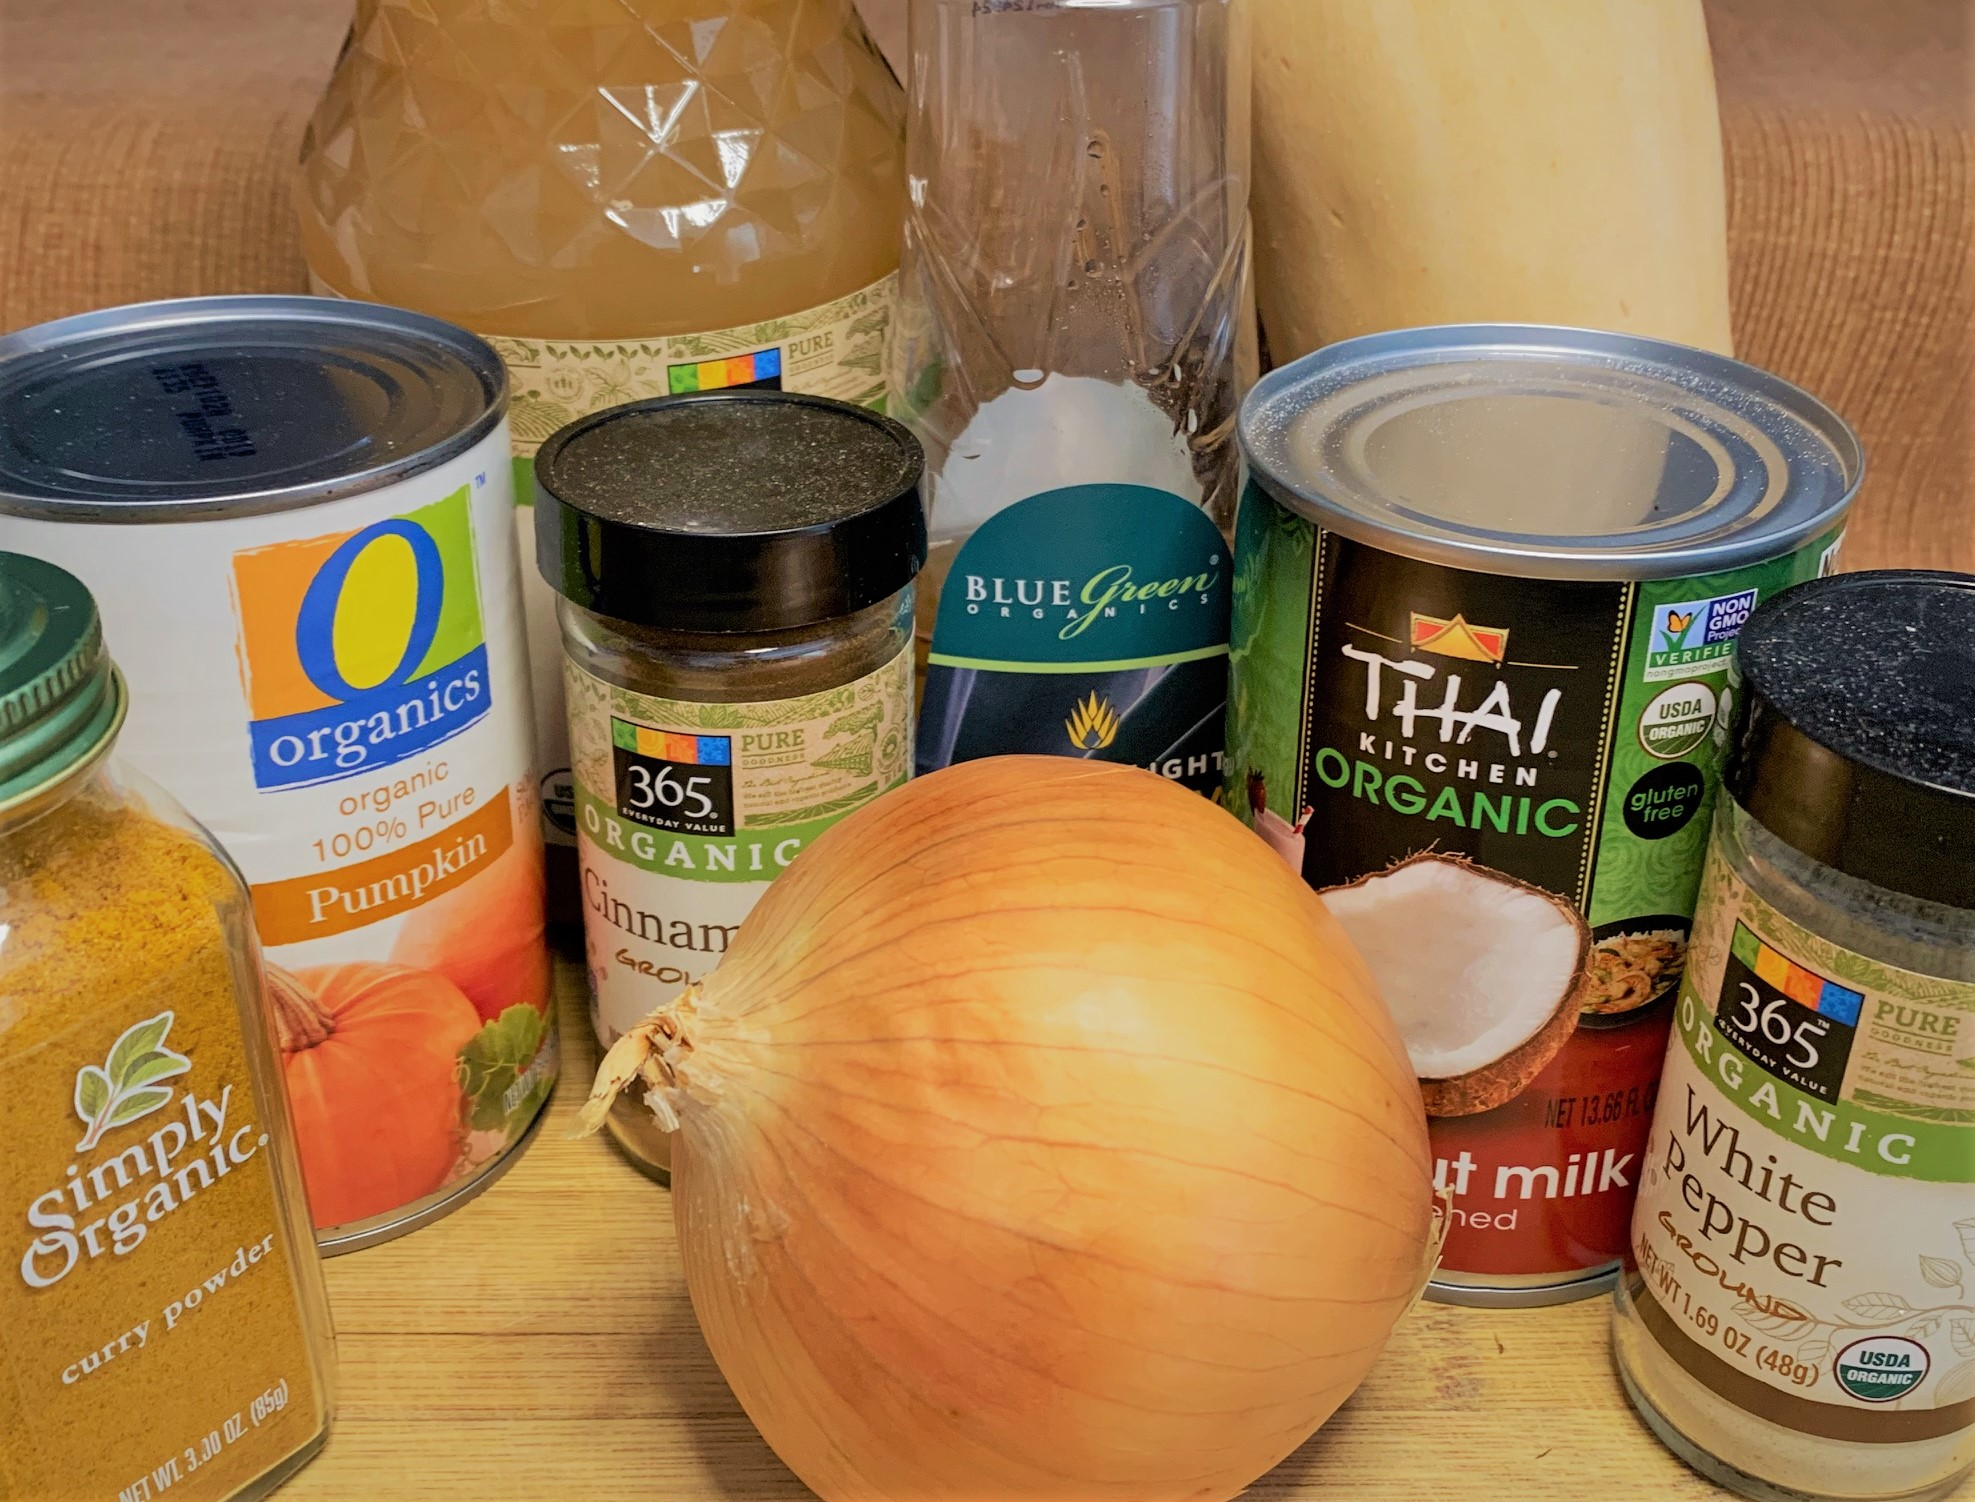 The ingredients for our Pumpkin Soup from Sunshine Seasons